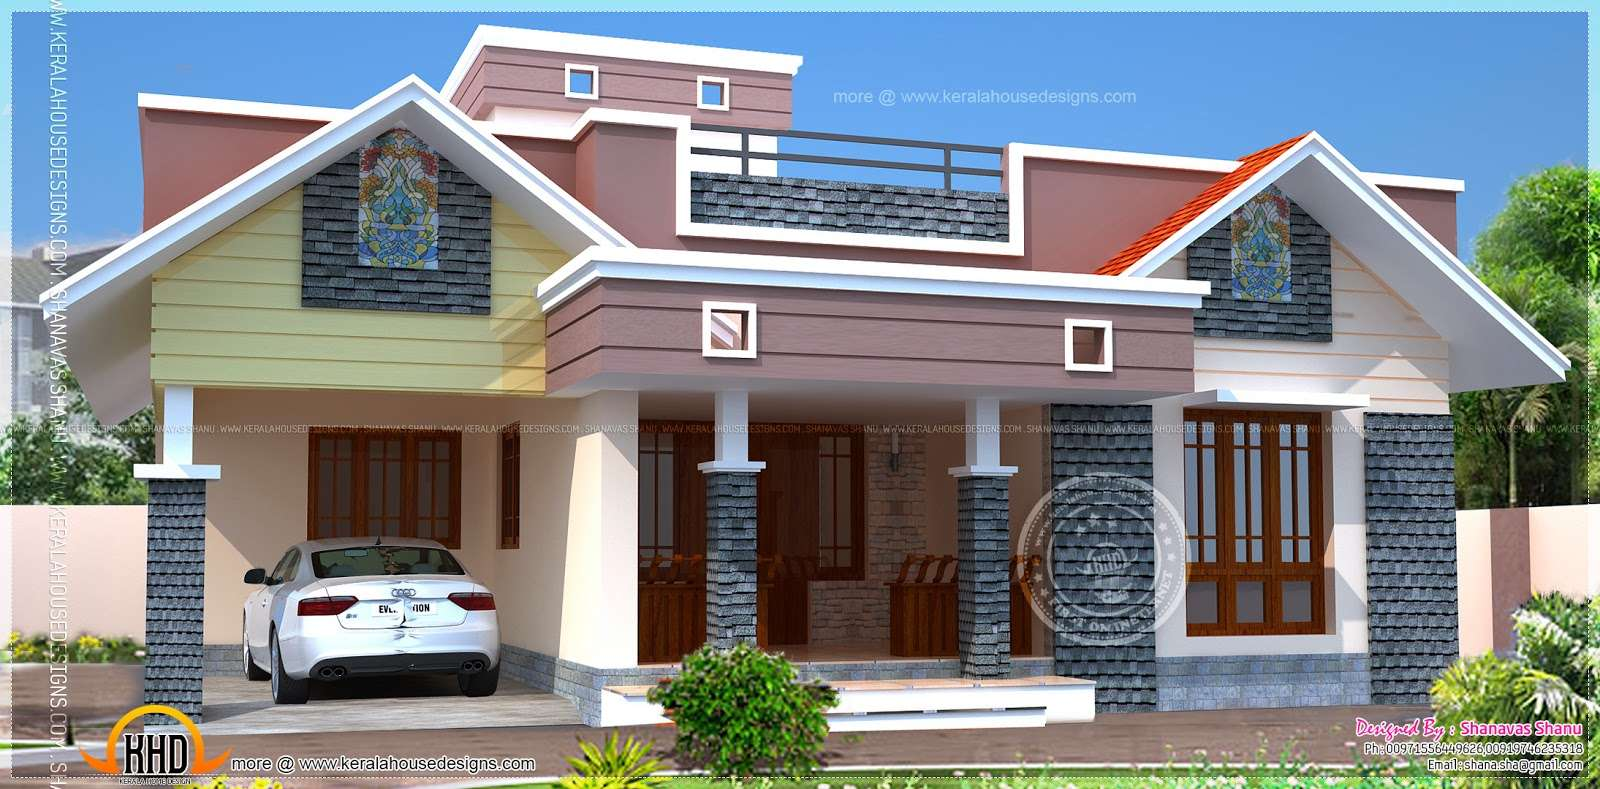 south indian small house designs : Rhydo.us